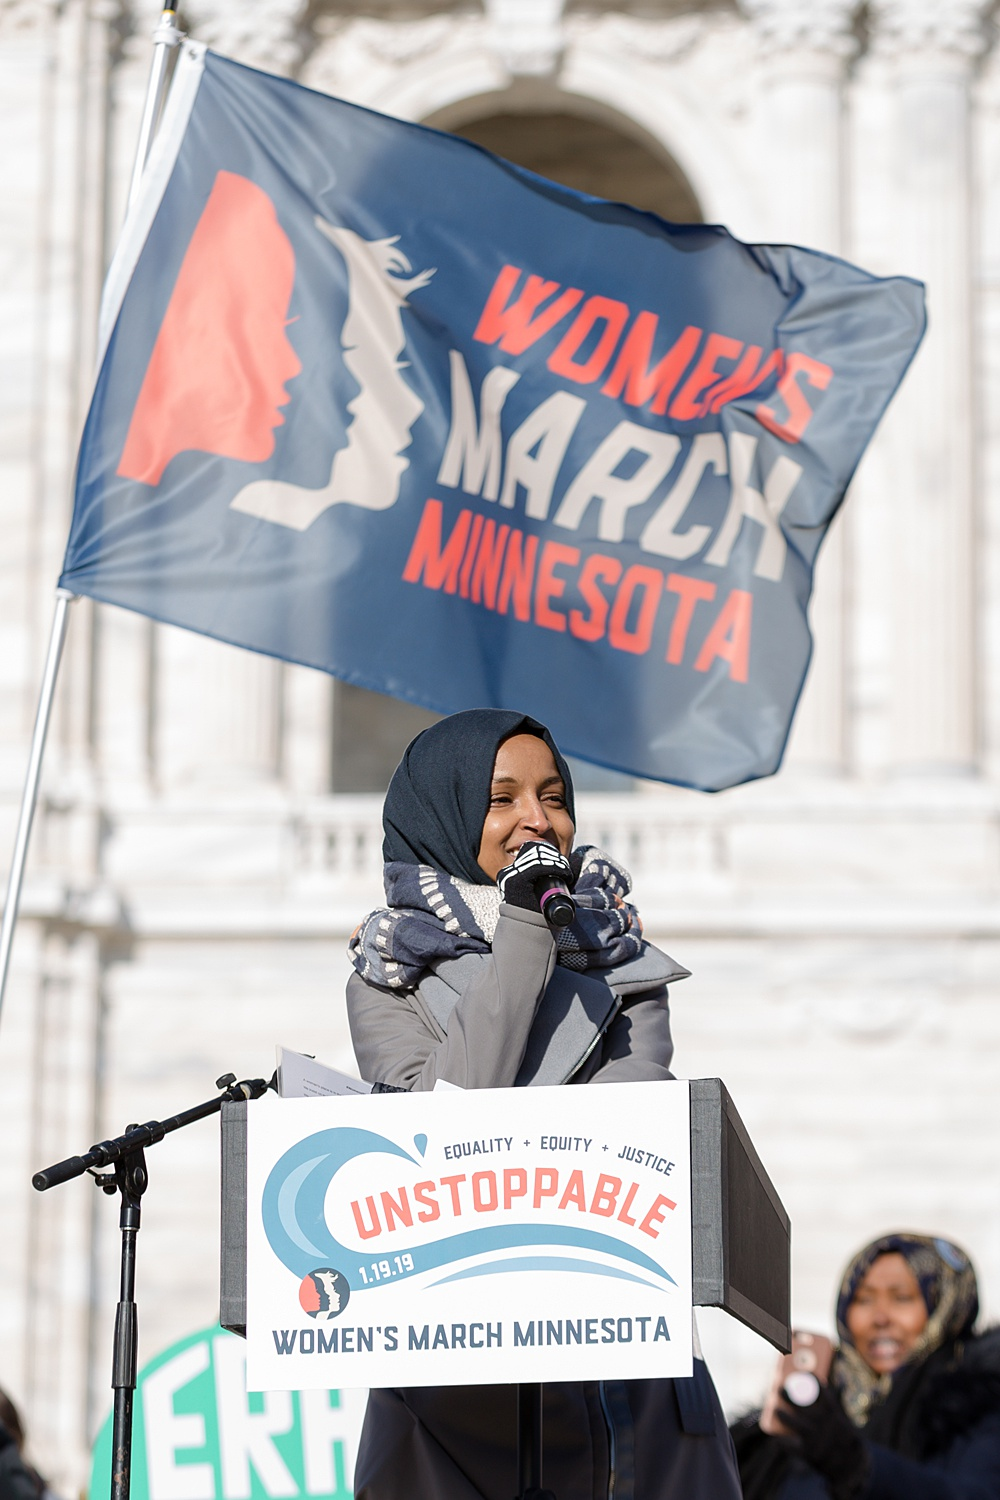 WOMENS MARCH | U.S. REPRESENTATIVE ILHAN OMAR